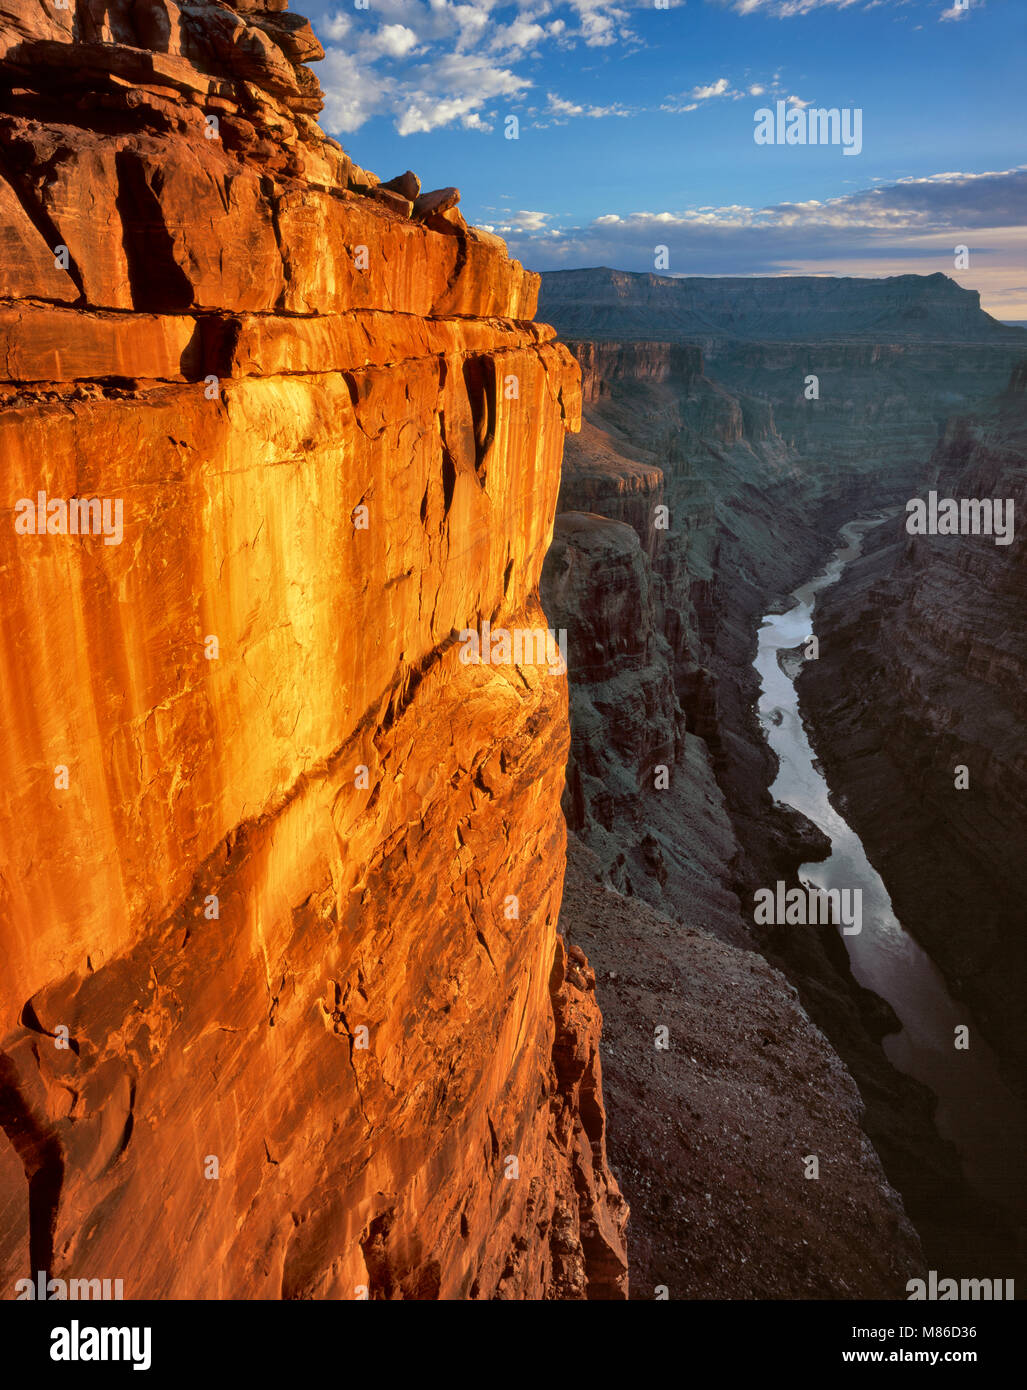 Toroweap übersehen, Colorado River, Grand Canyon National Park, Arizona Stockbild